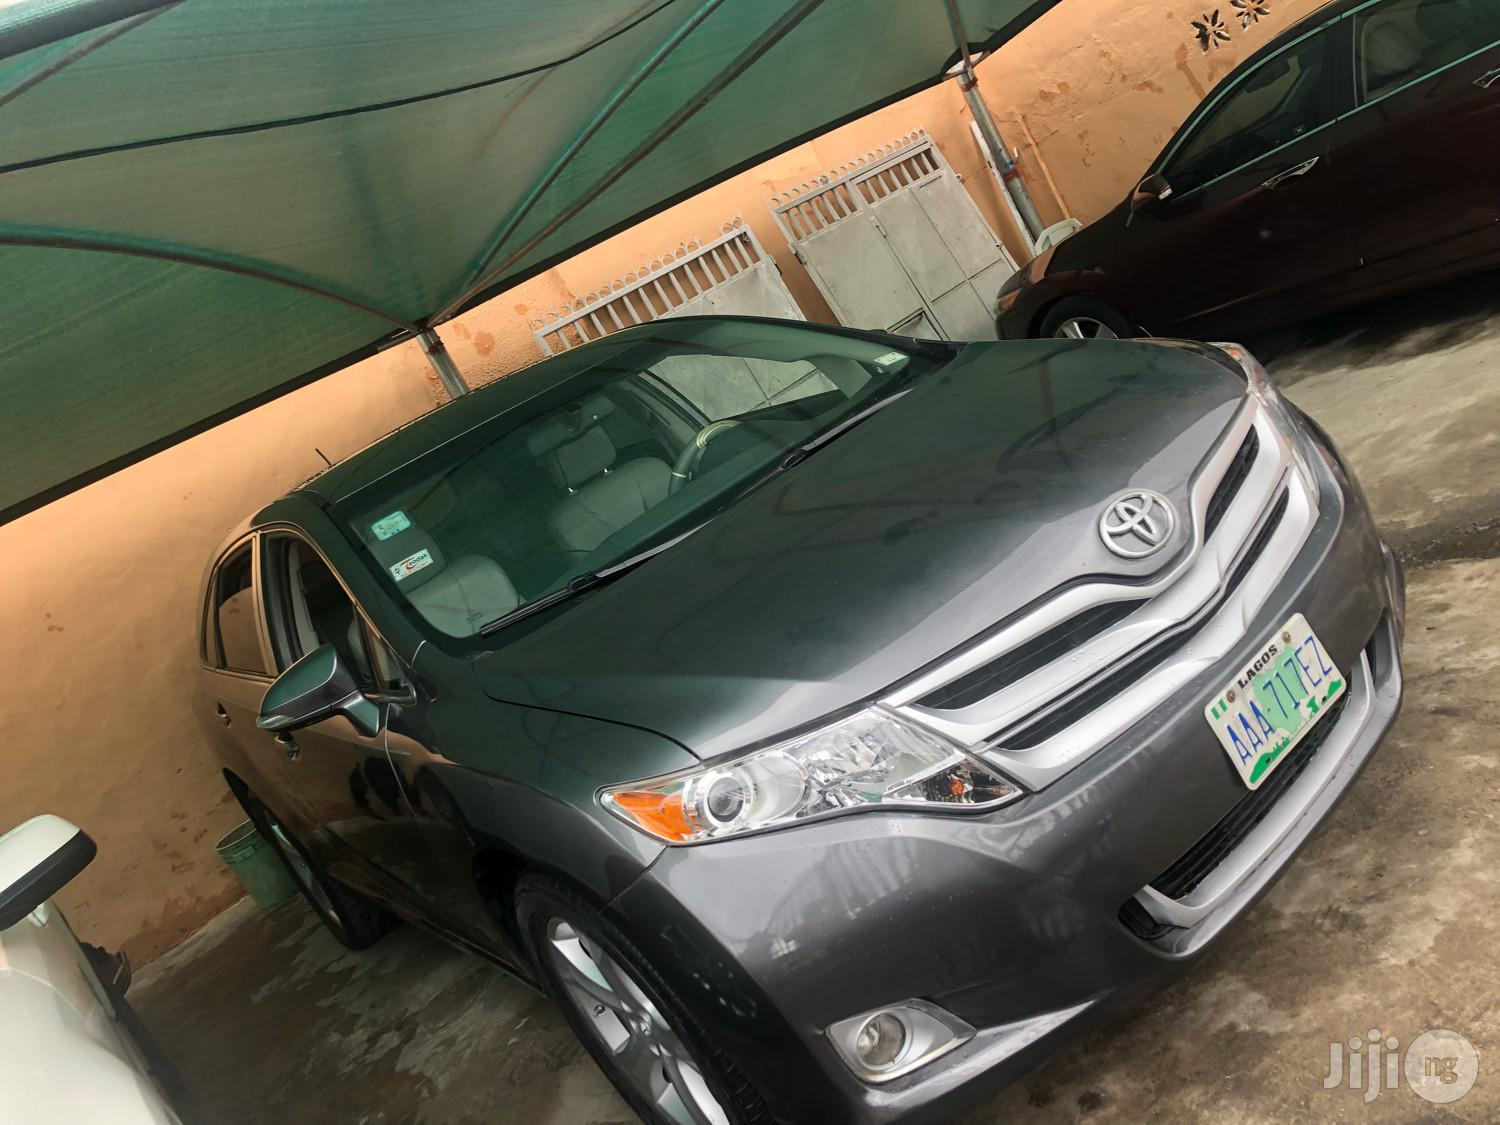 Toyota Venza 2011 Gray | Cars for sale in Surulere, Lagos State, Nigeria